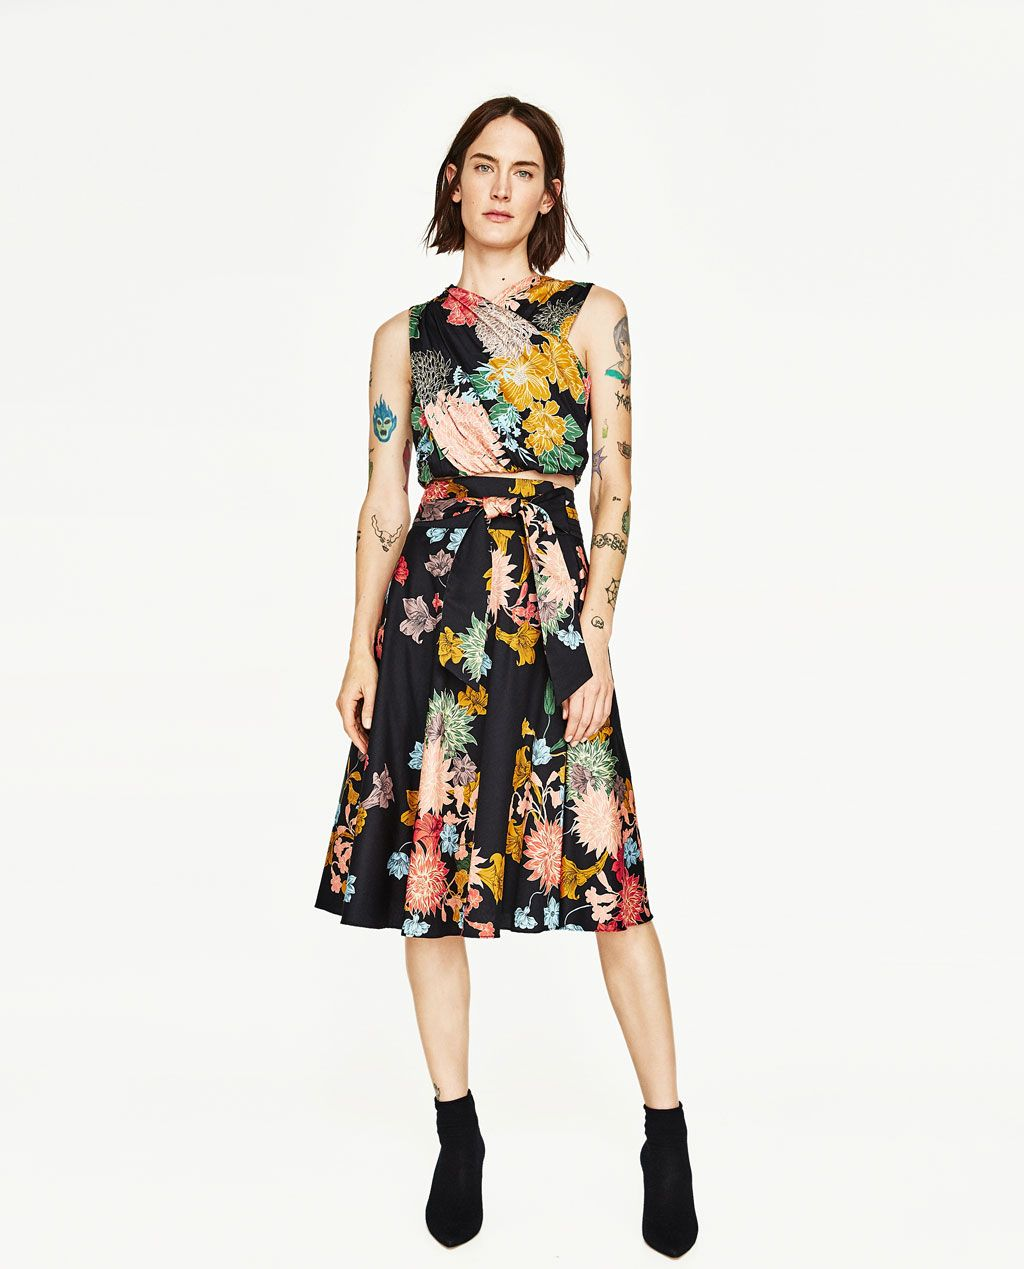 FLORAL PRINT SKIRT-View All-SKIRTS-WOMAN | ZARA United States